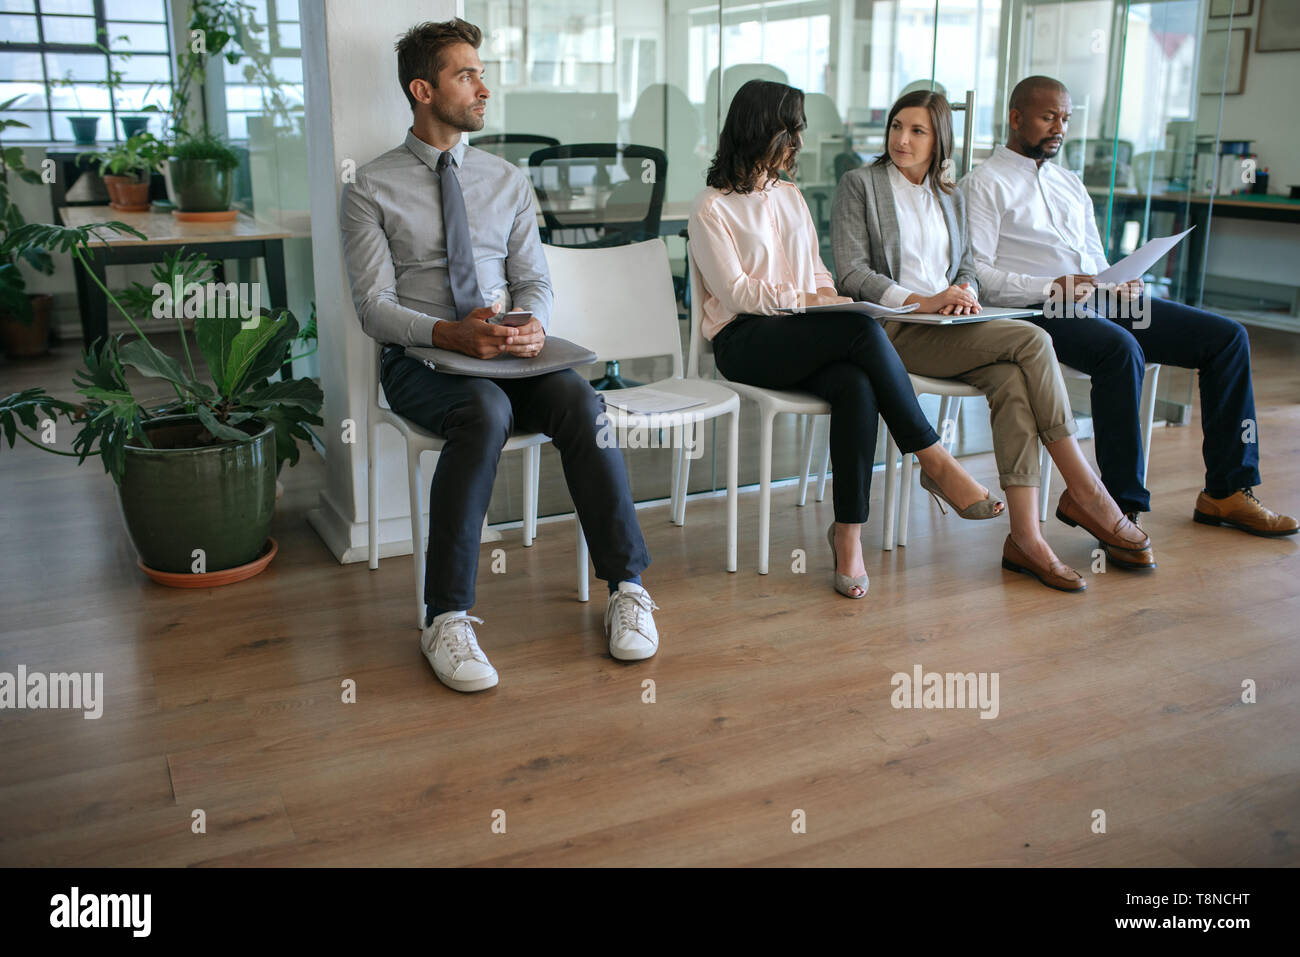 Job applicants sitting in an office waiting to be interviewed - Stock Image